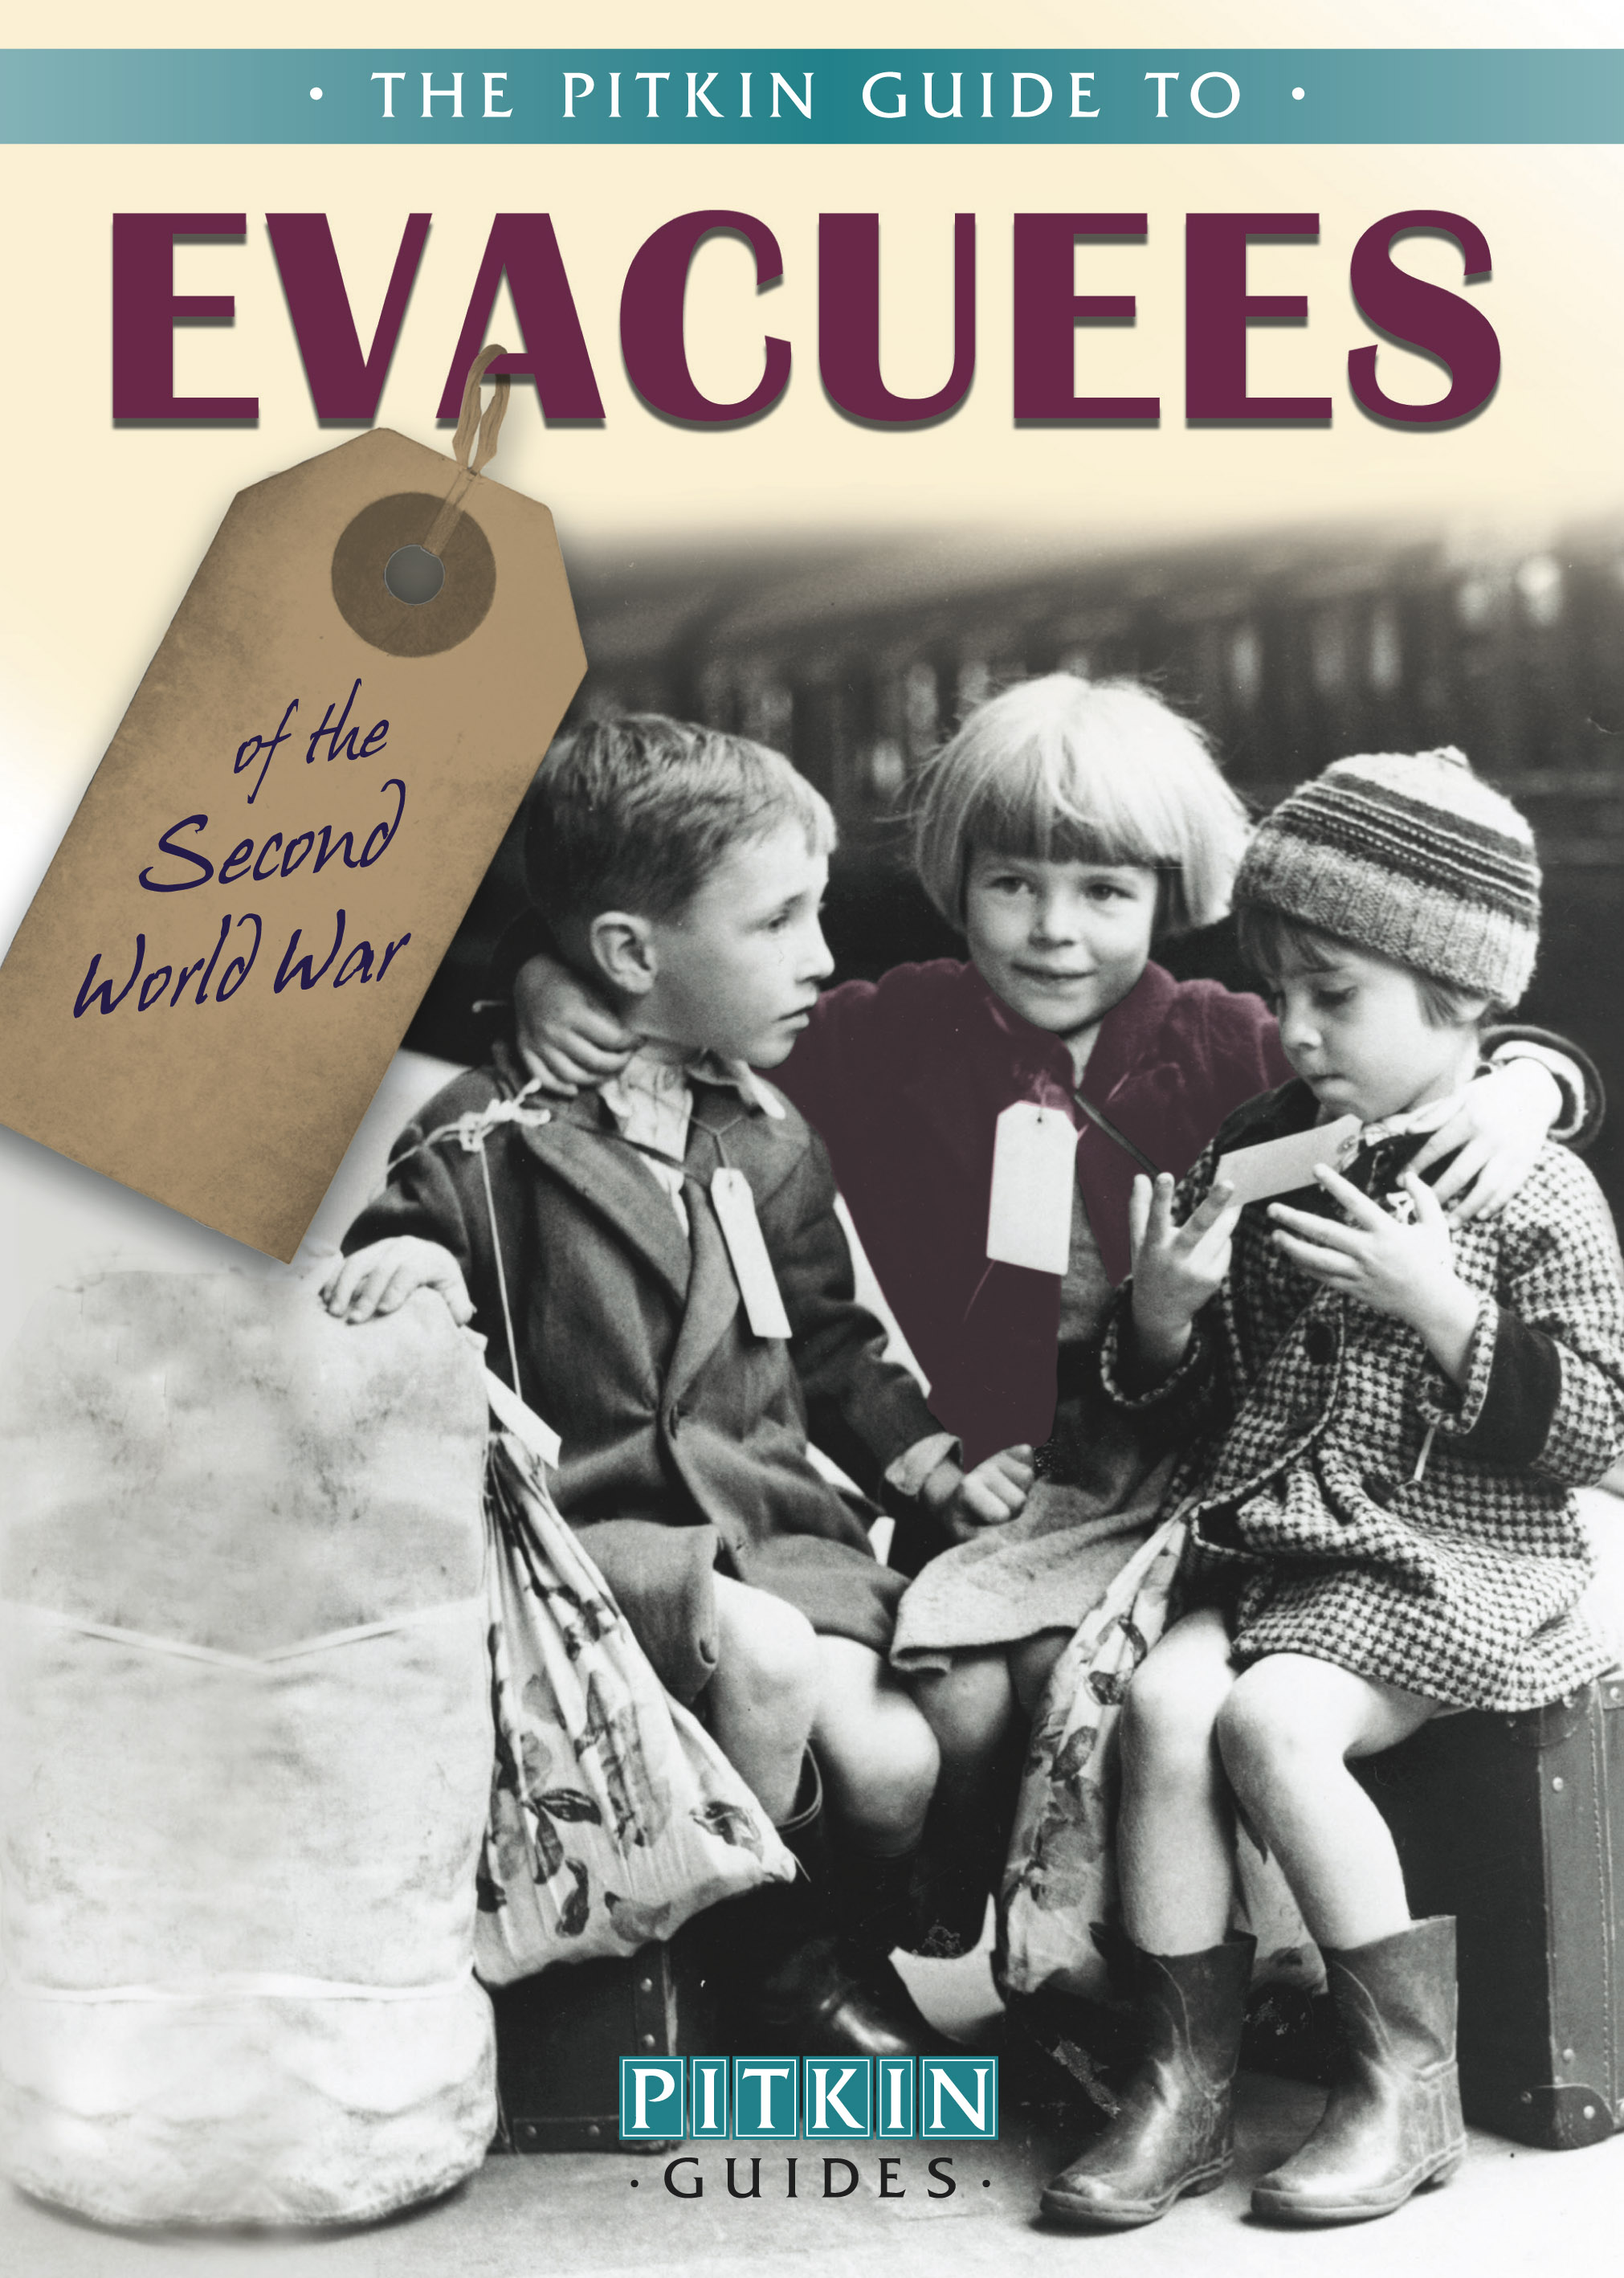 Evacuees of Second World War